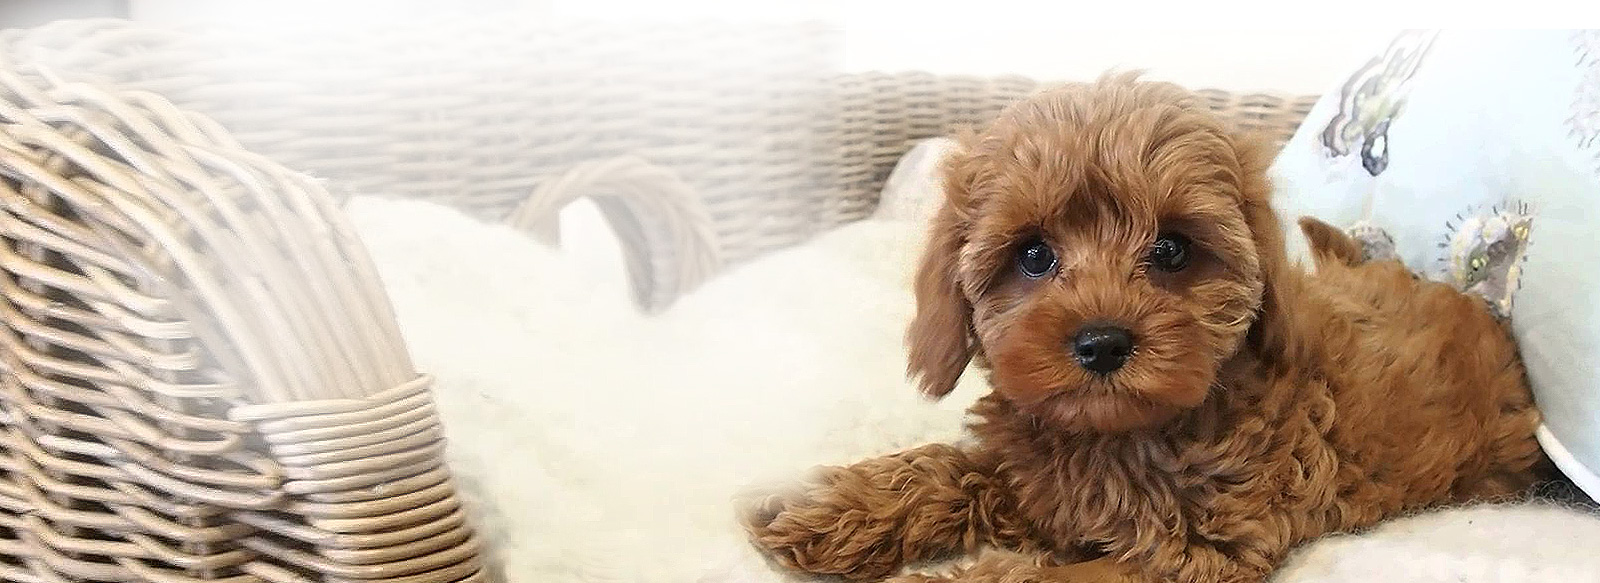 Tails R Wagging - Cavoodle Puppies For Sale - Toy ...